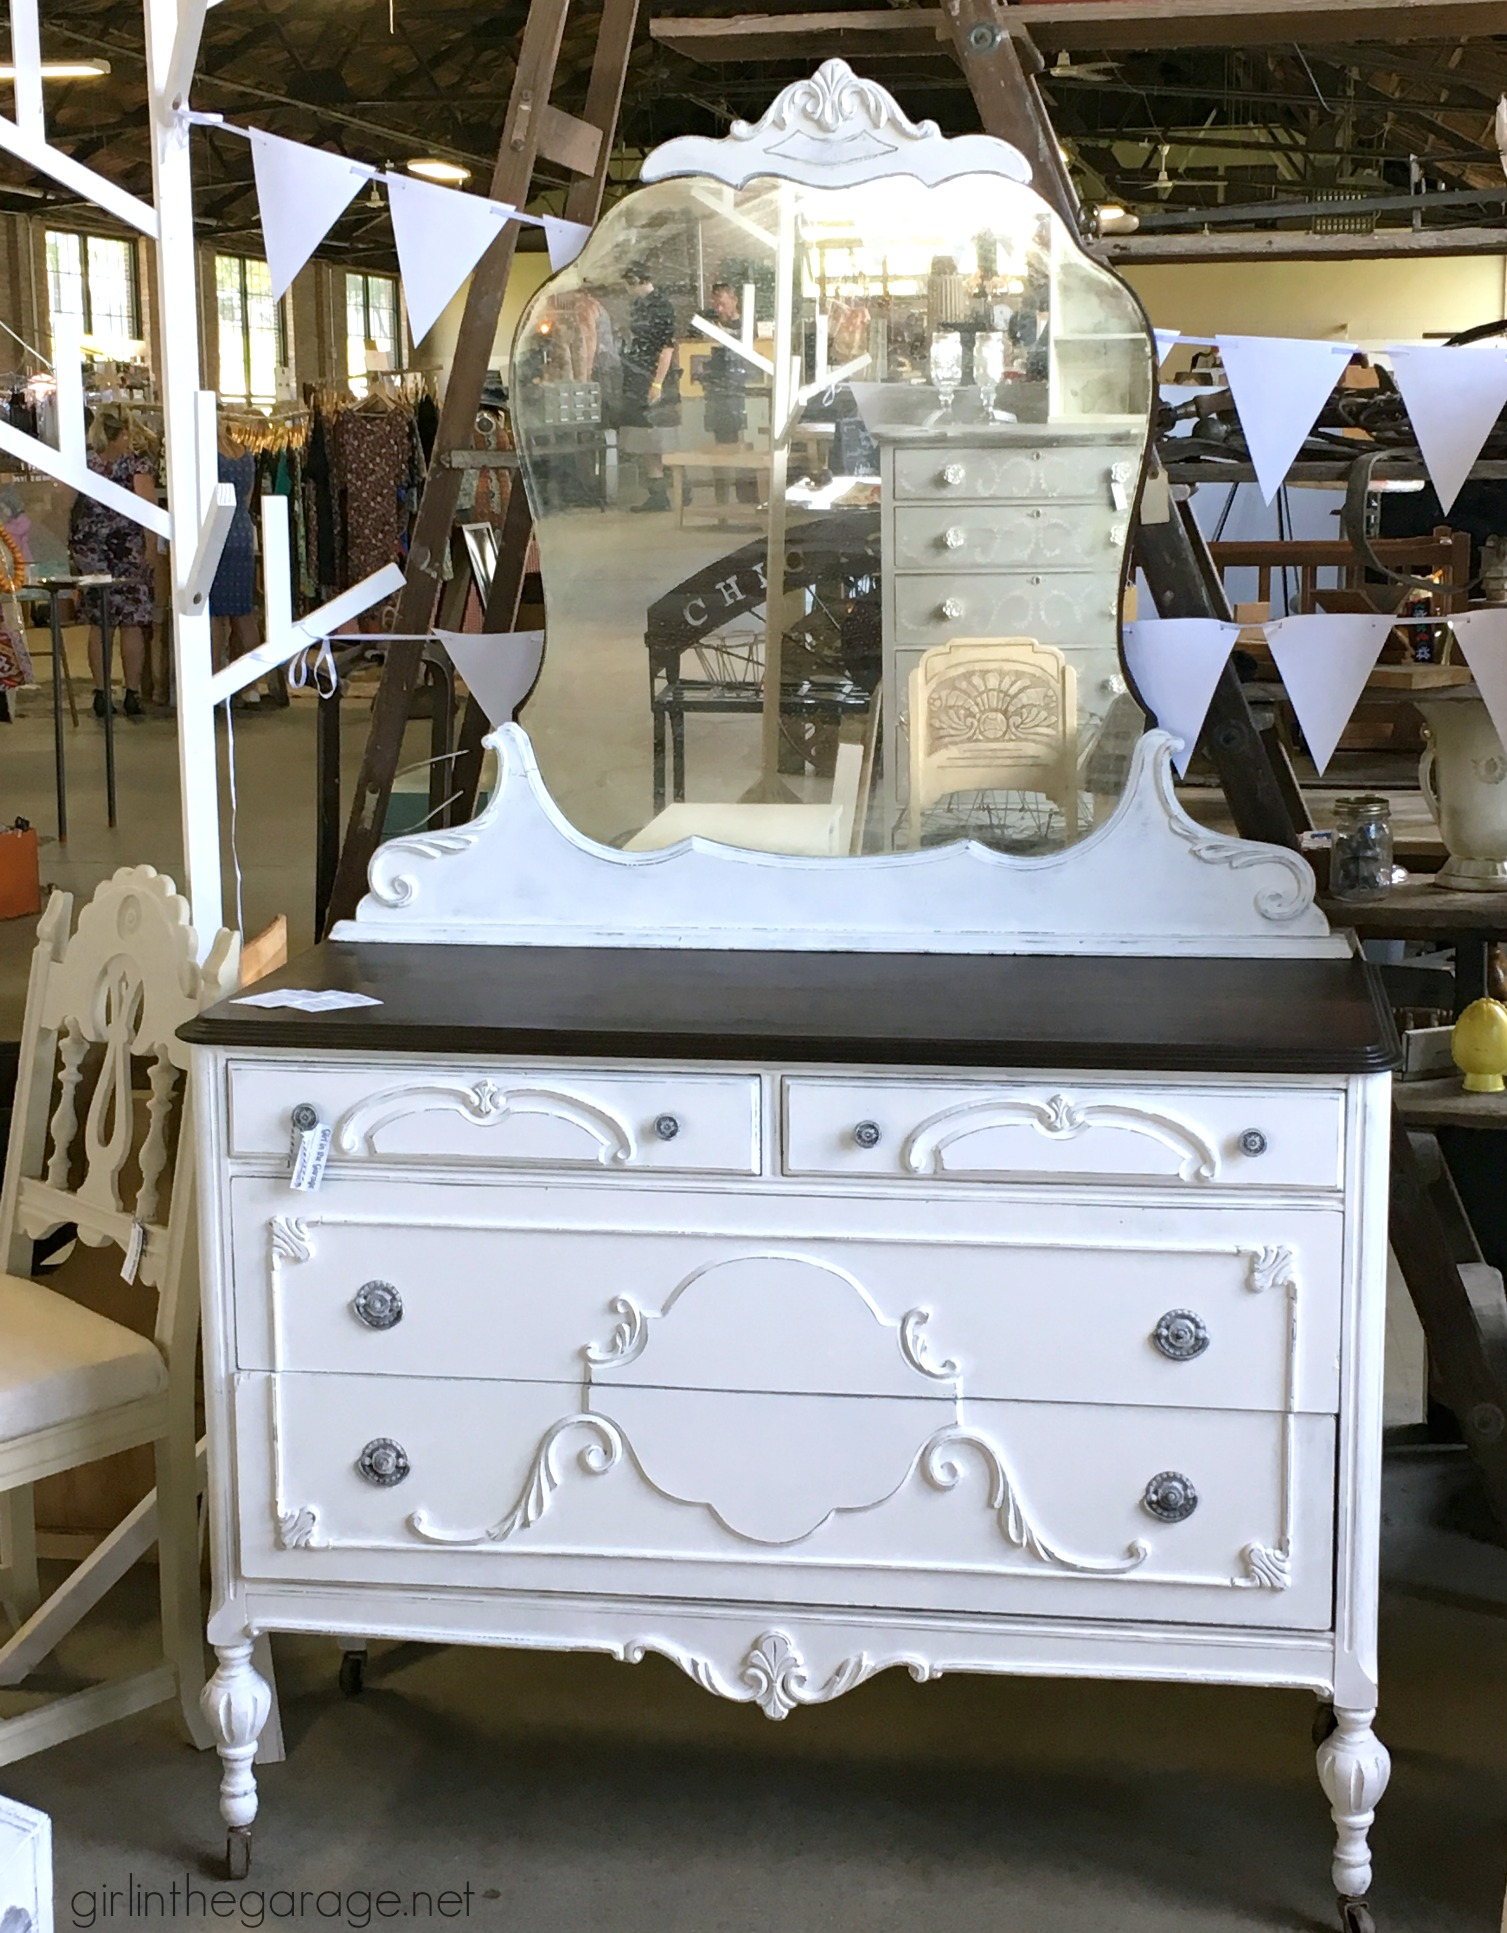 How to repair and revive an antique vanity makeover - Girl in the Garage - The Antique Vanity Makeover – Trashy To Treasure Girl In The Garage®